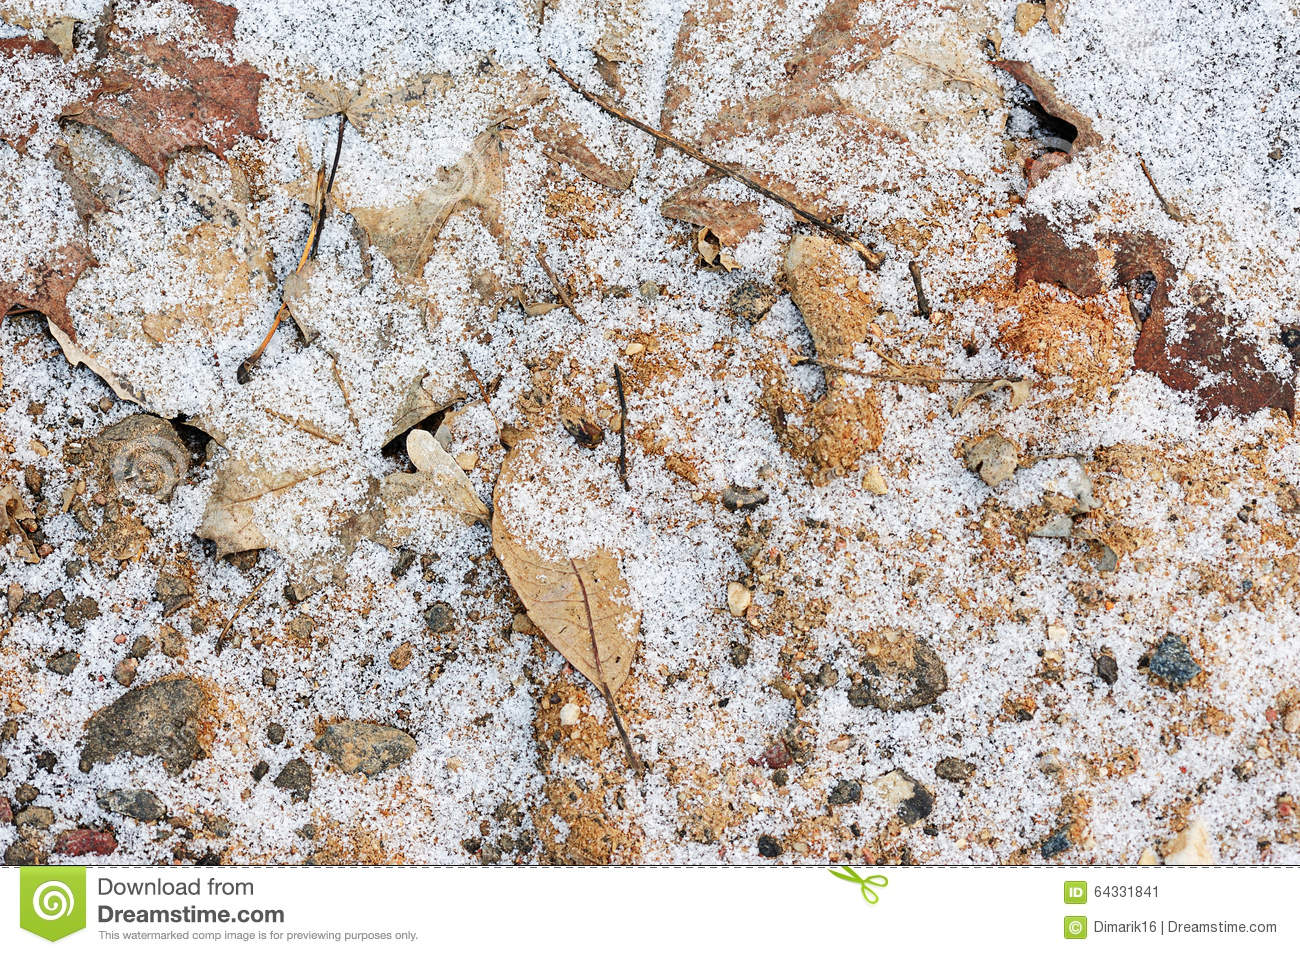 Download Frozen ground with snow stock image. Image of park, natural - 64331841